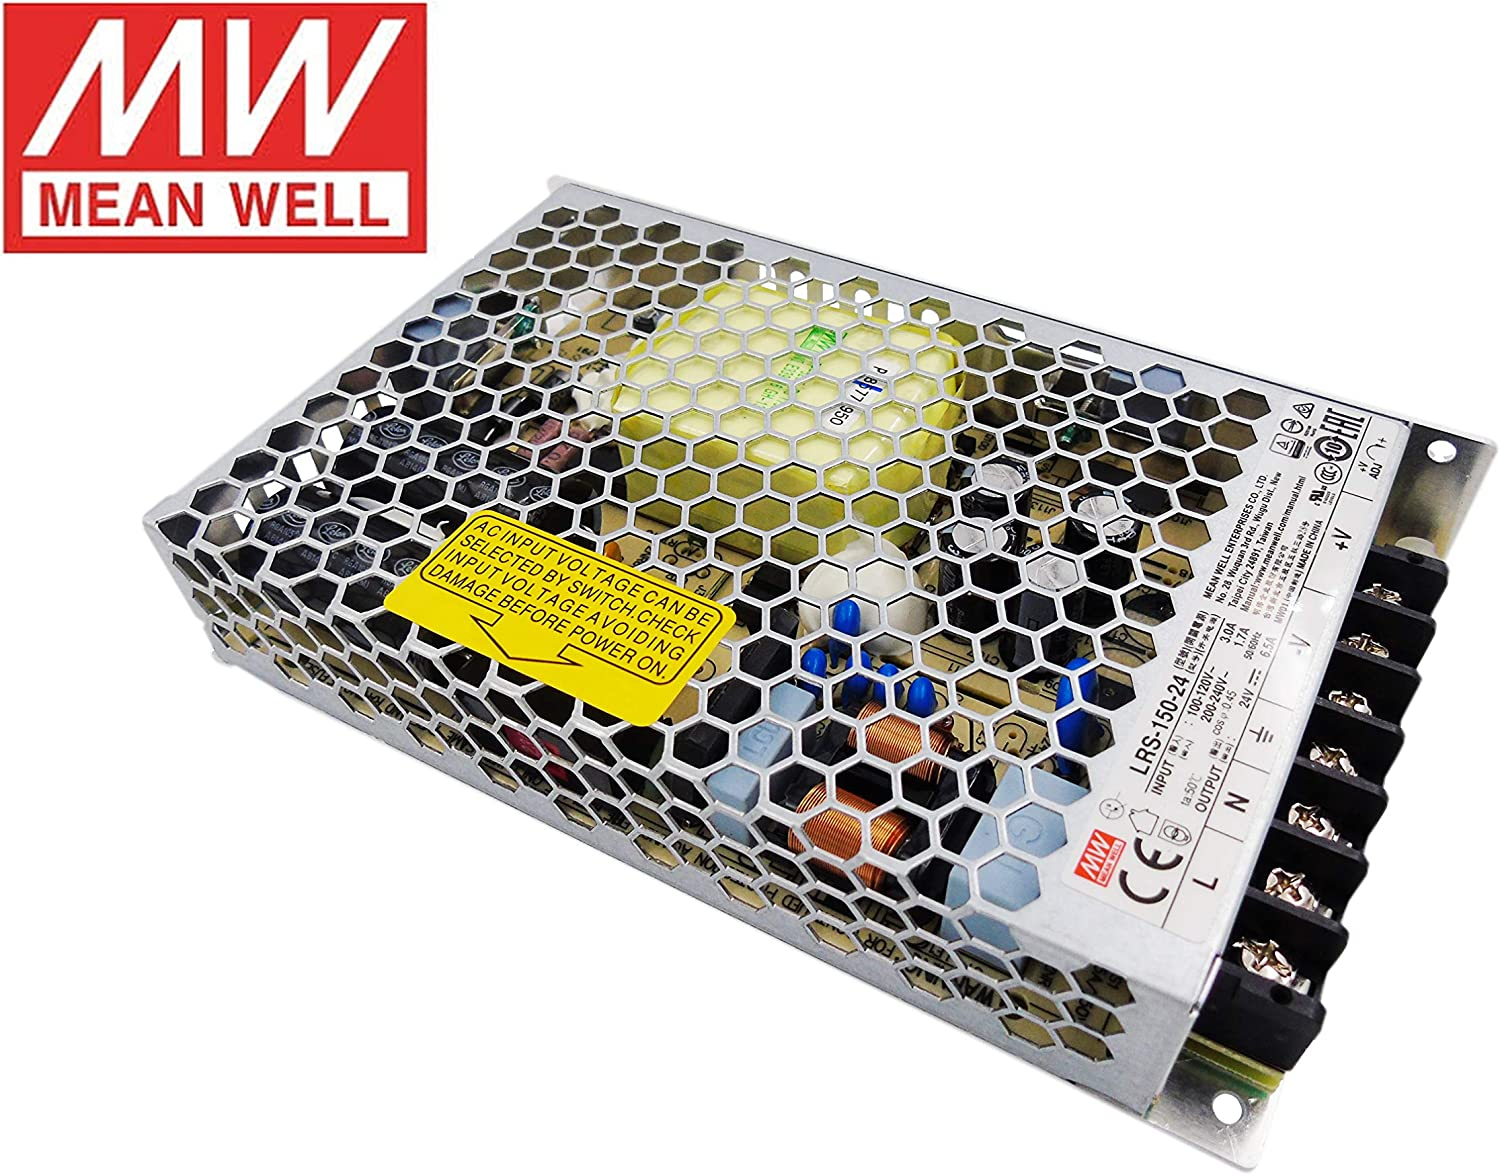 MeanWell Fuente de alimentacion 156W 24V 6.5A Enclosed LRS-150-24 Power Supply AC/DC